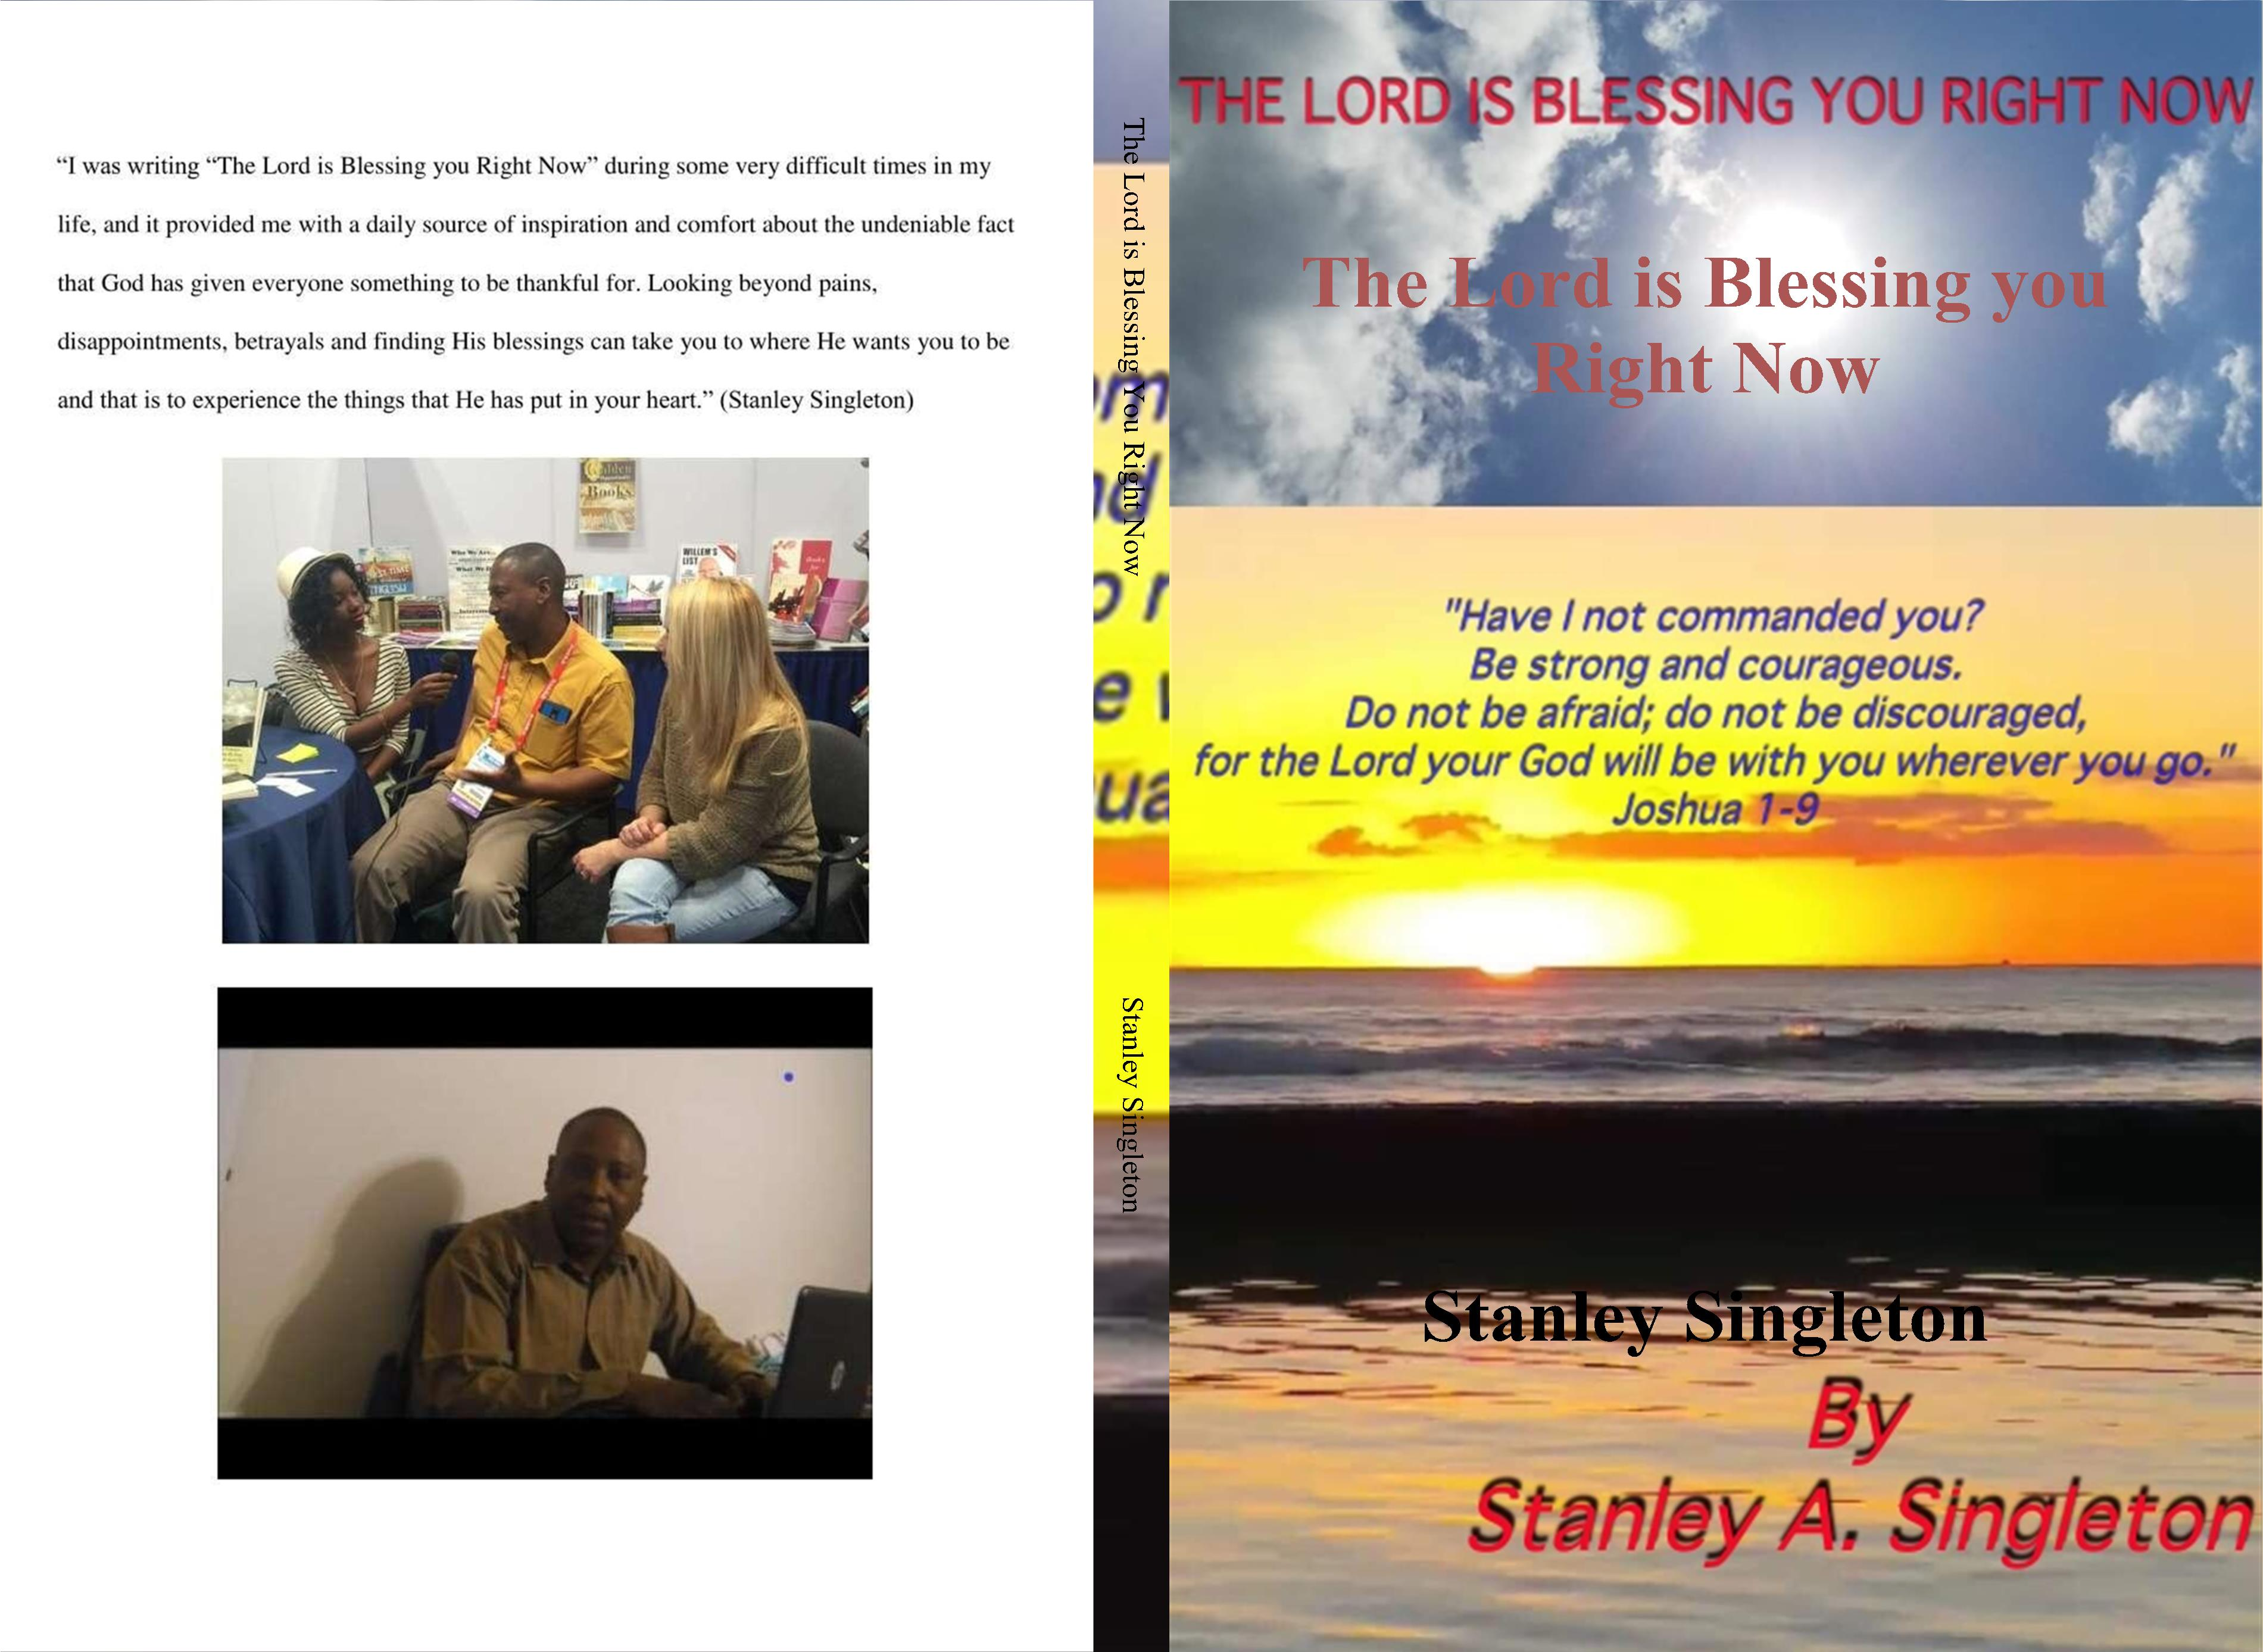 The Lord is Blessing You Right Now cover image